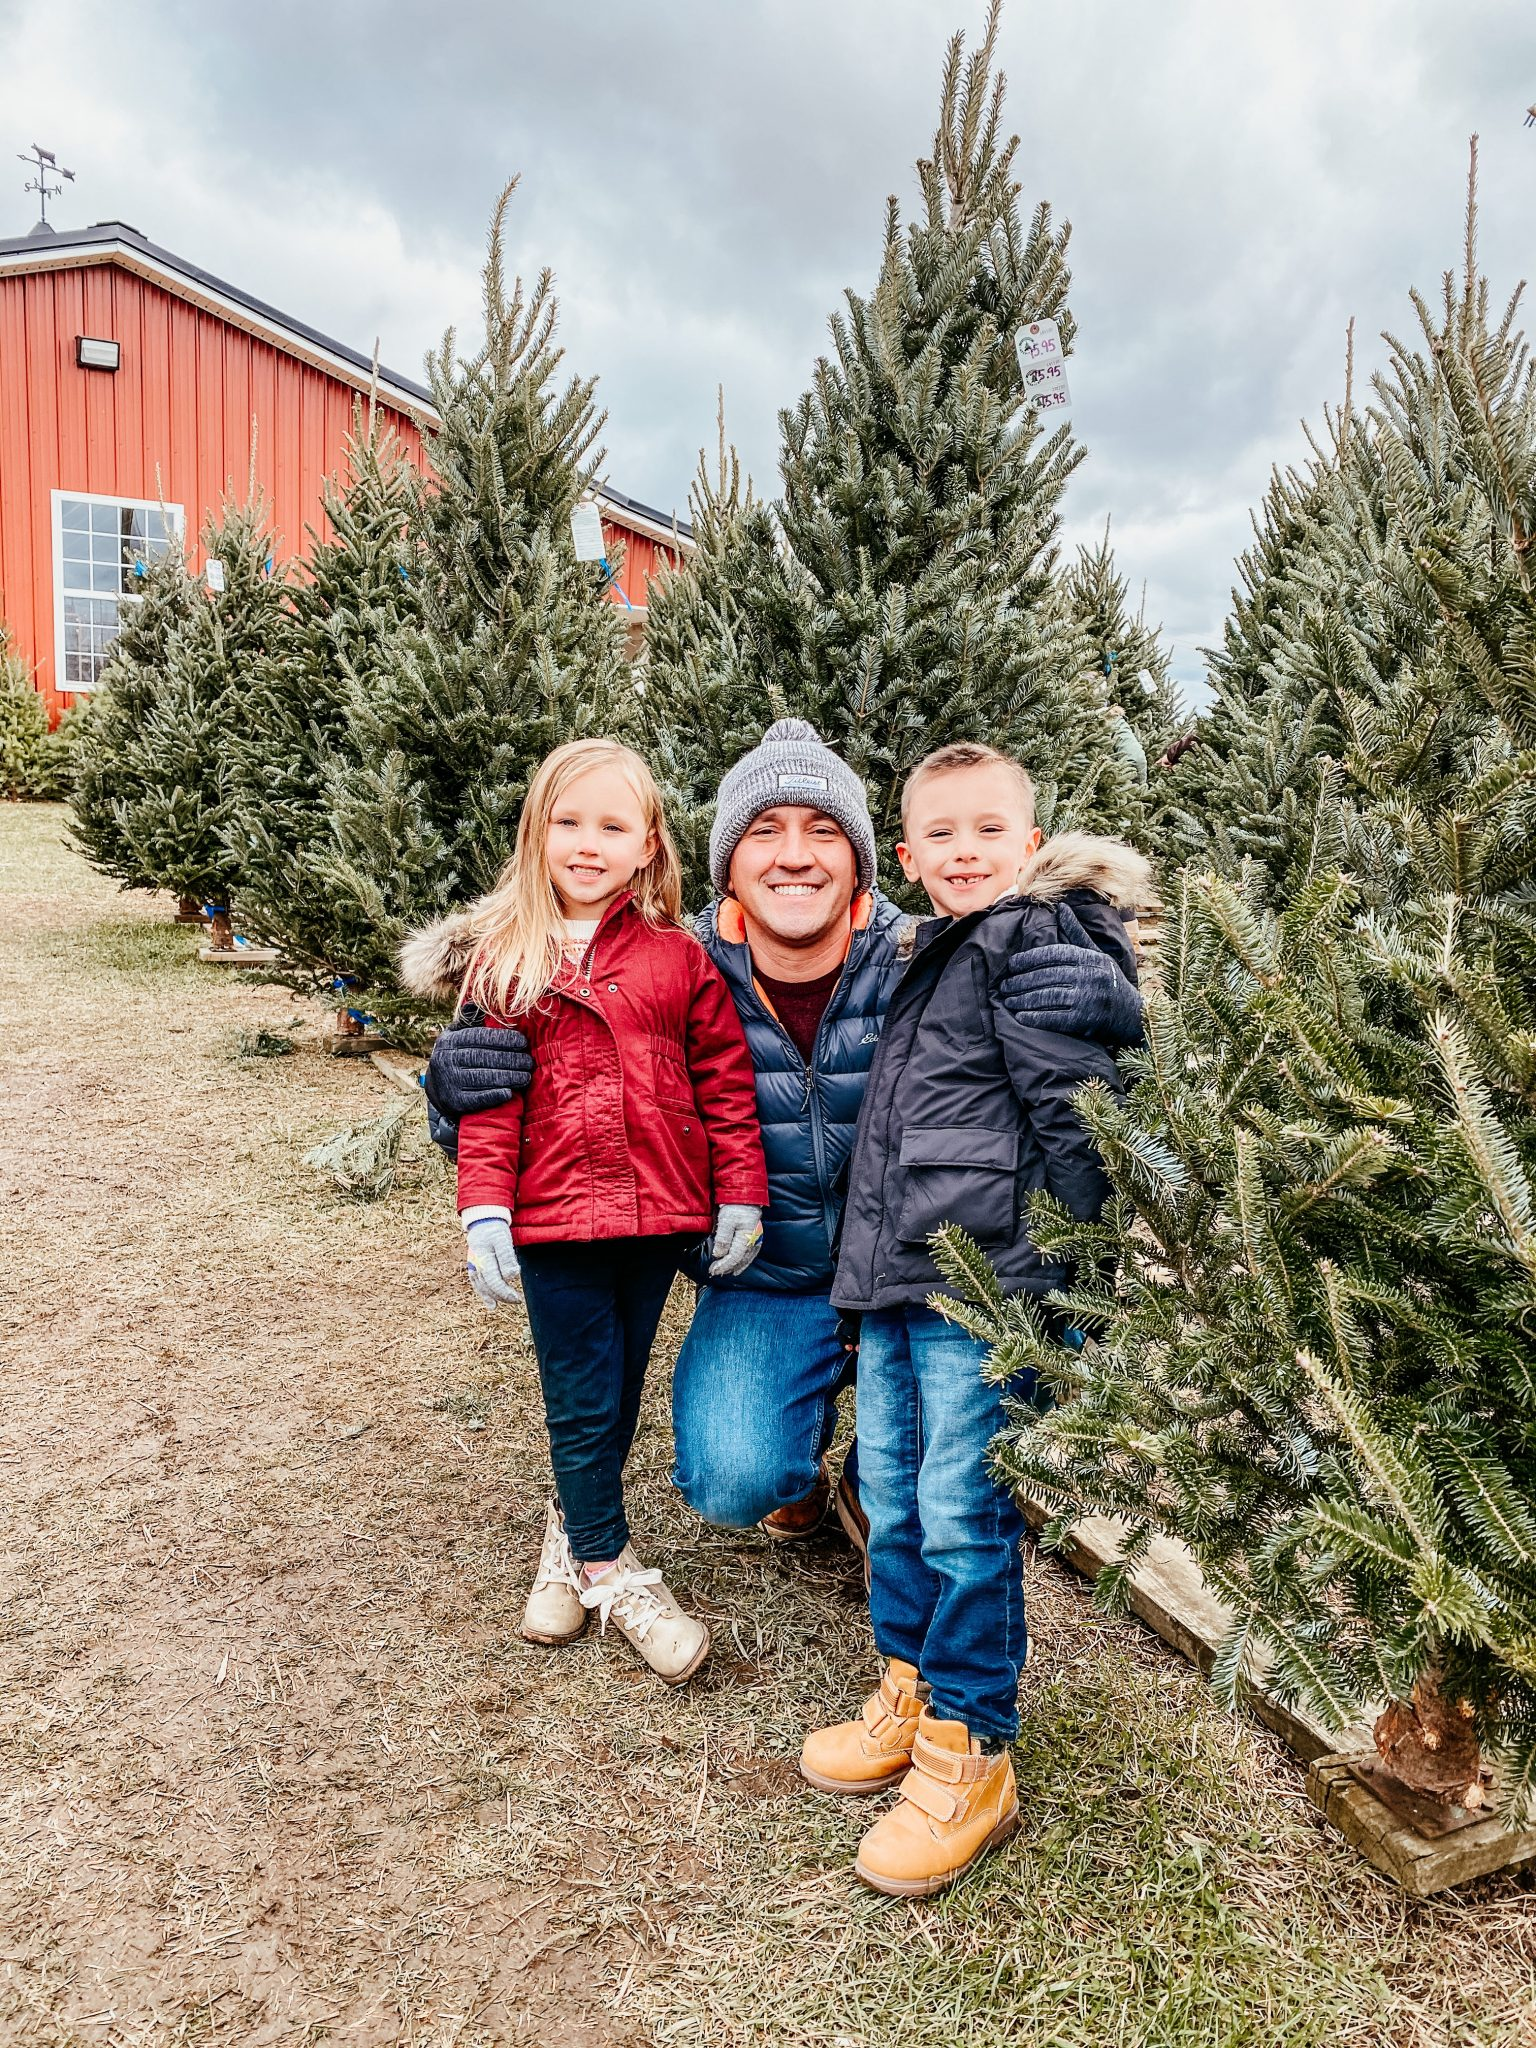 Winter outings with the family | Daily Splendor Life and Style Blog | Christmas Tree Farm #familychristmas #holidayfestivities #familyadventures #Christmastree #momlife